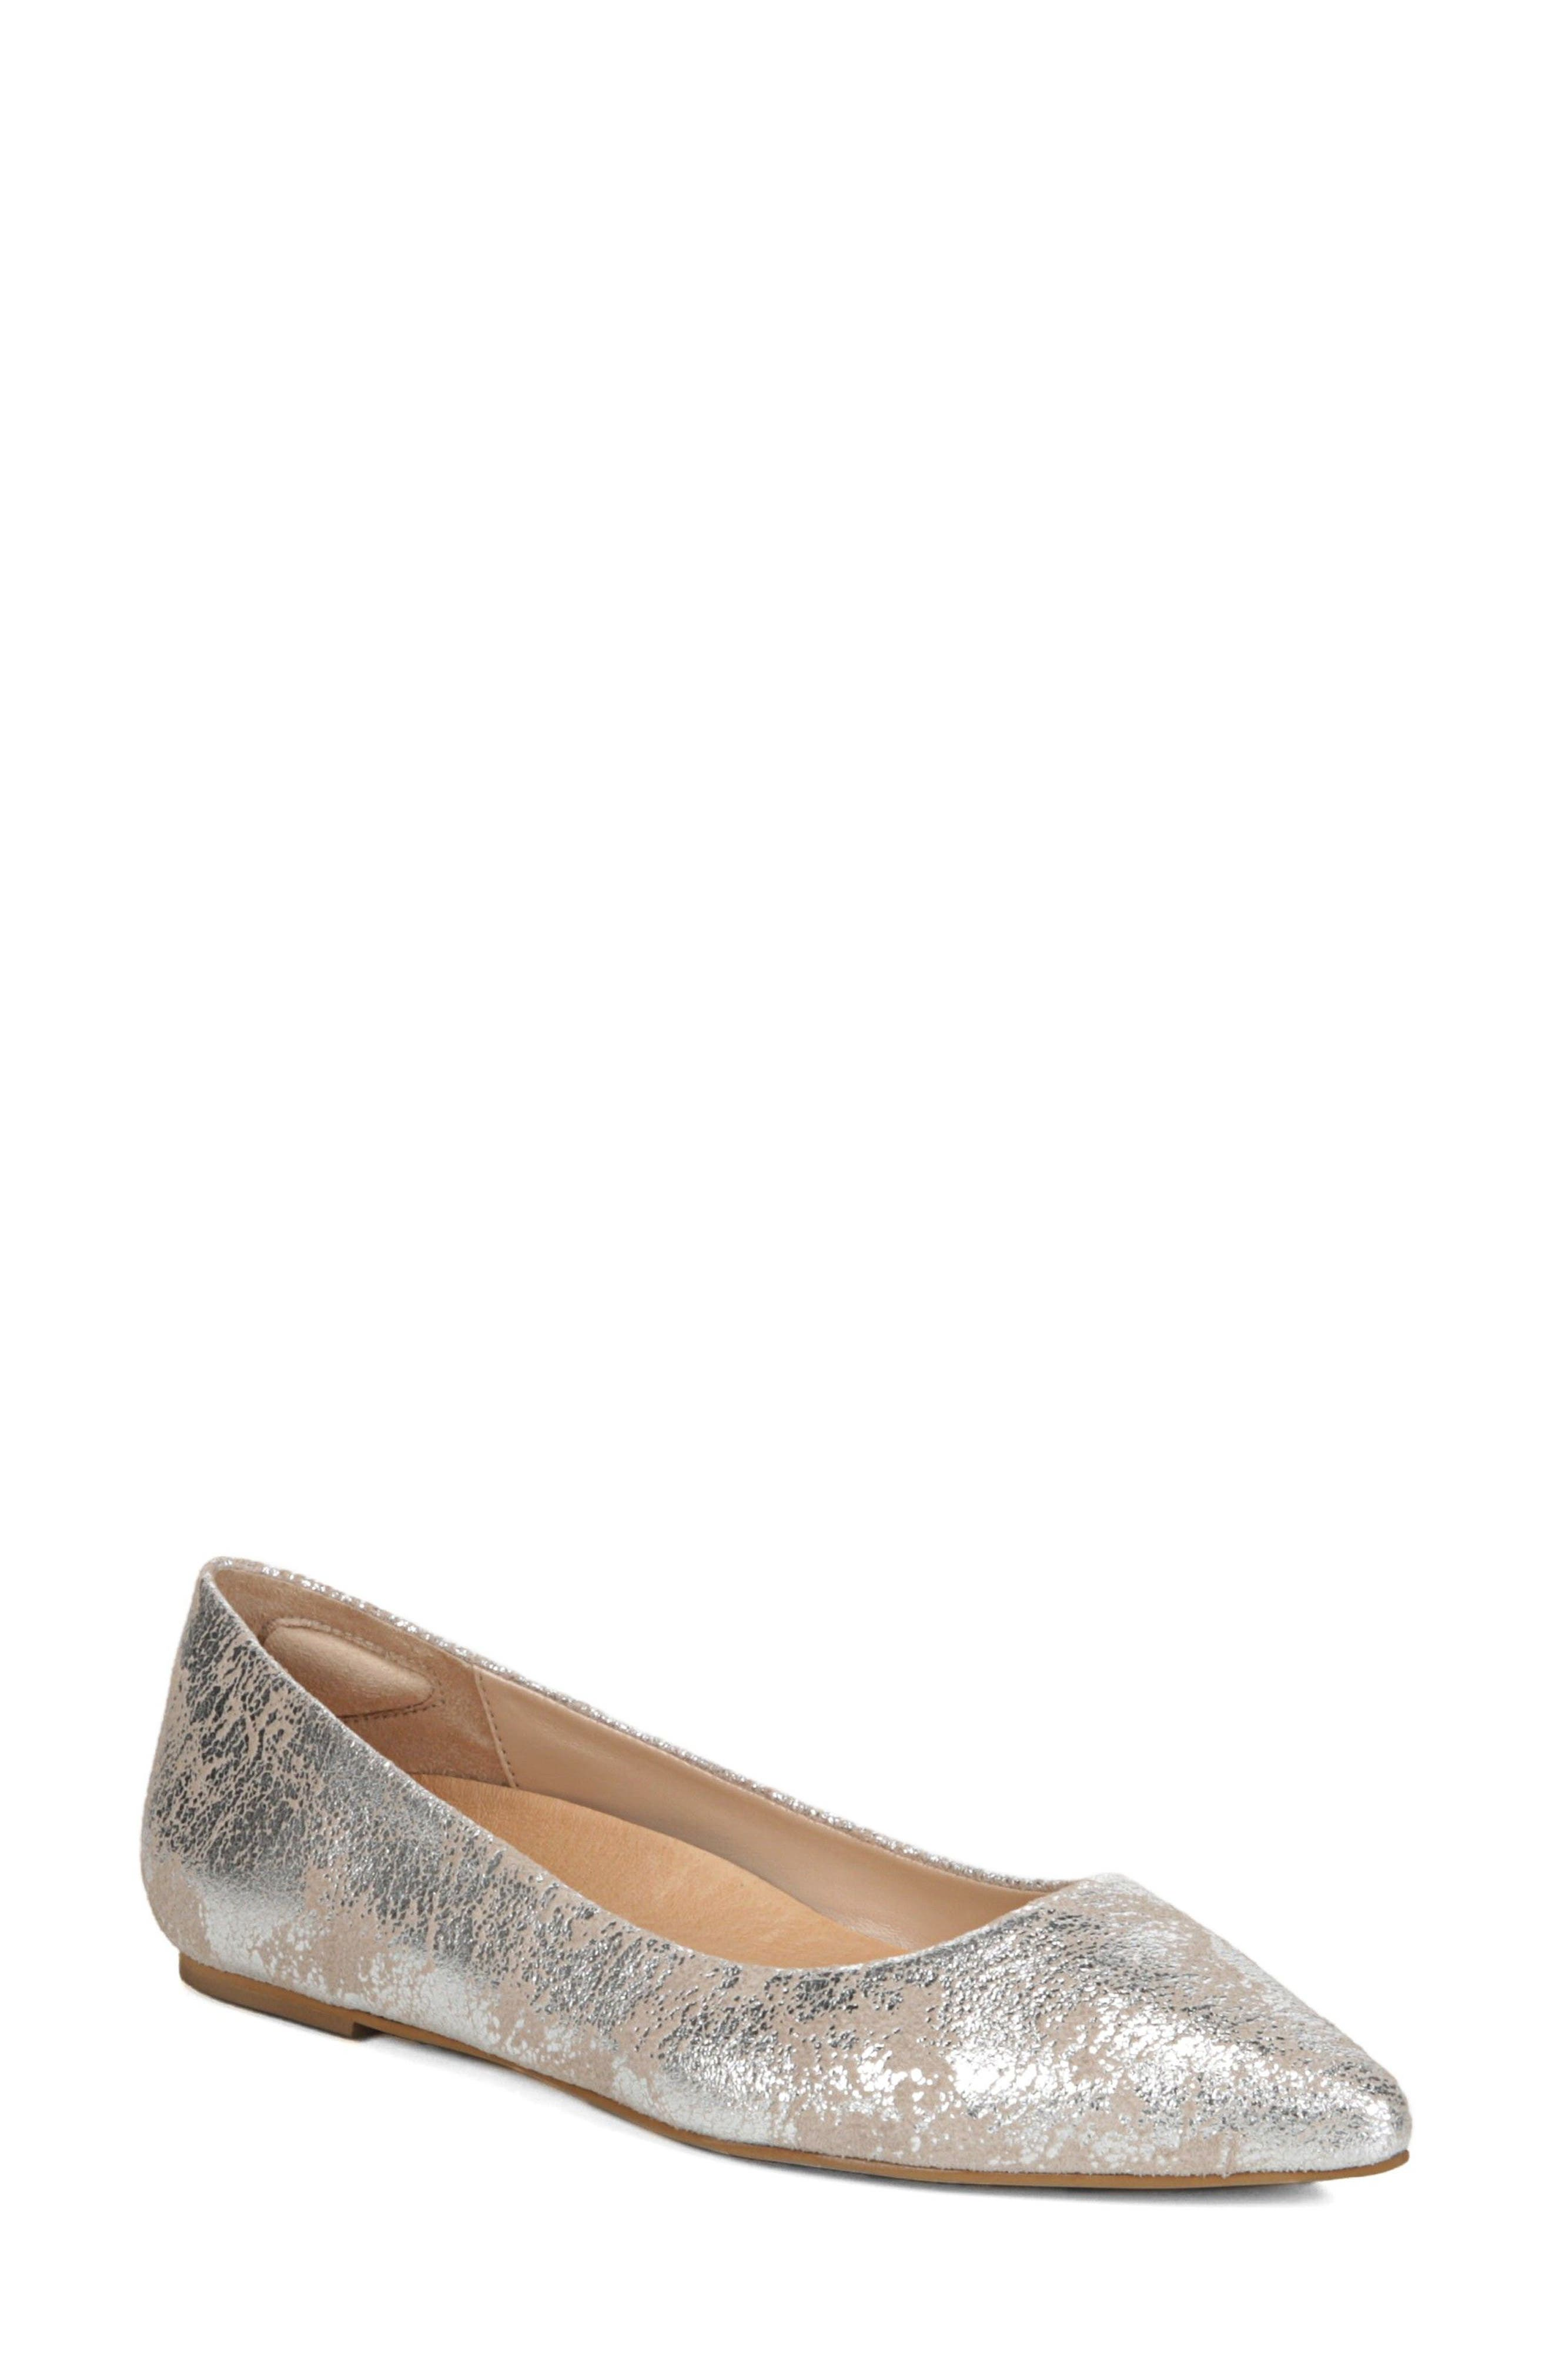 DR. SCHOLL'S, Original Collection Kimber Flat, Main thumbnail 1, color, PEWTER LEATHER